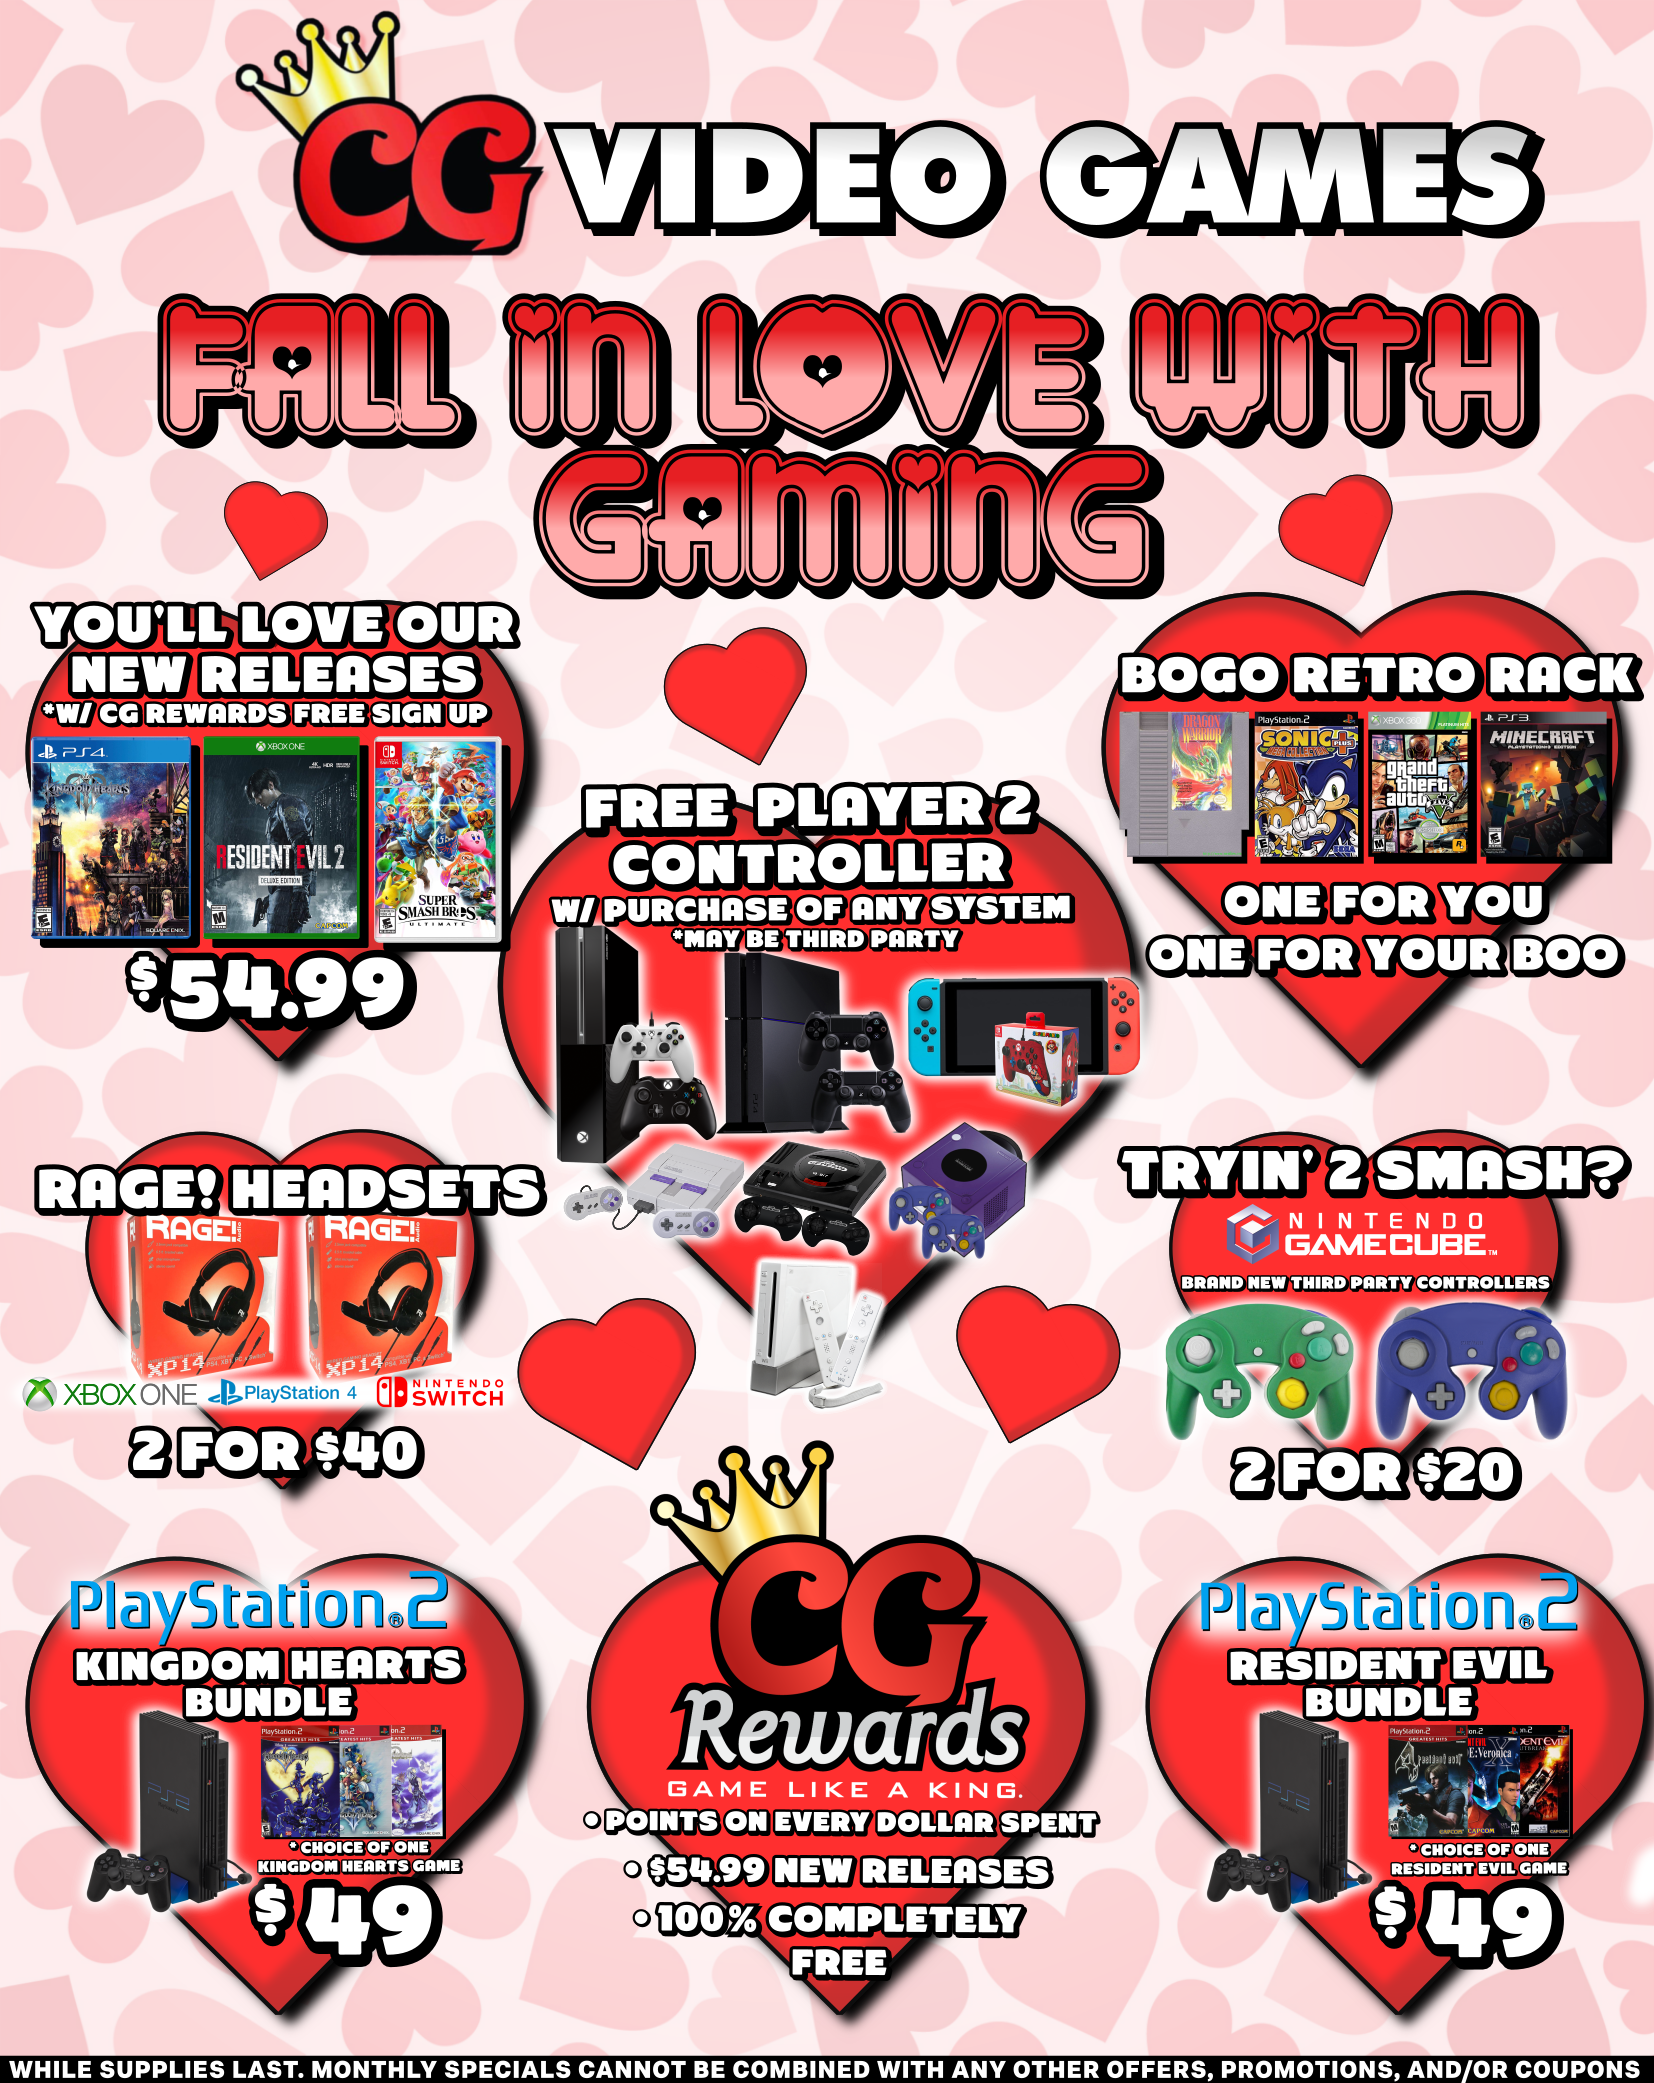 //www.cartridgesgaloregames.com/wp-content/uploads/2019/01/February-2019-Flyer.png